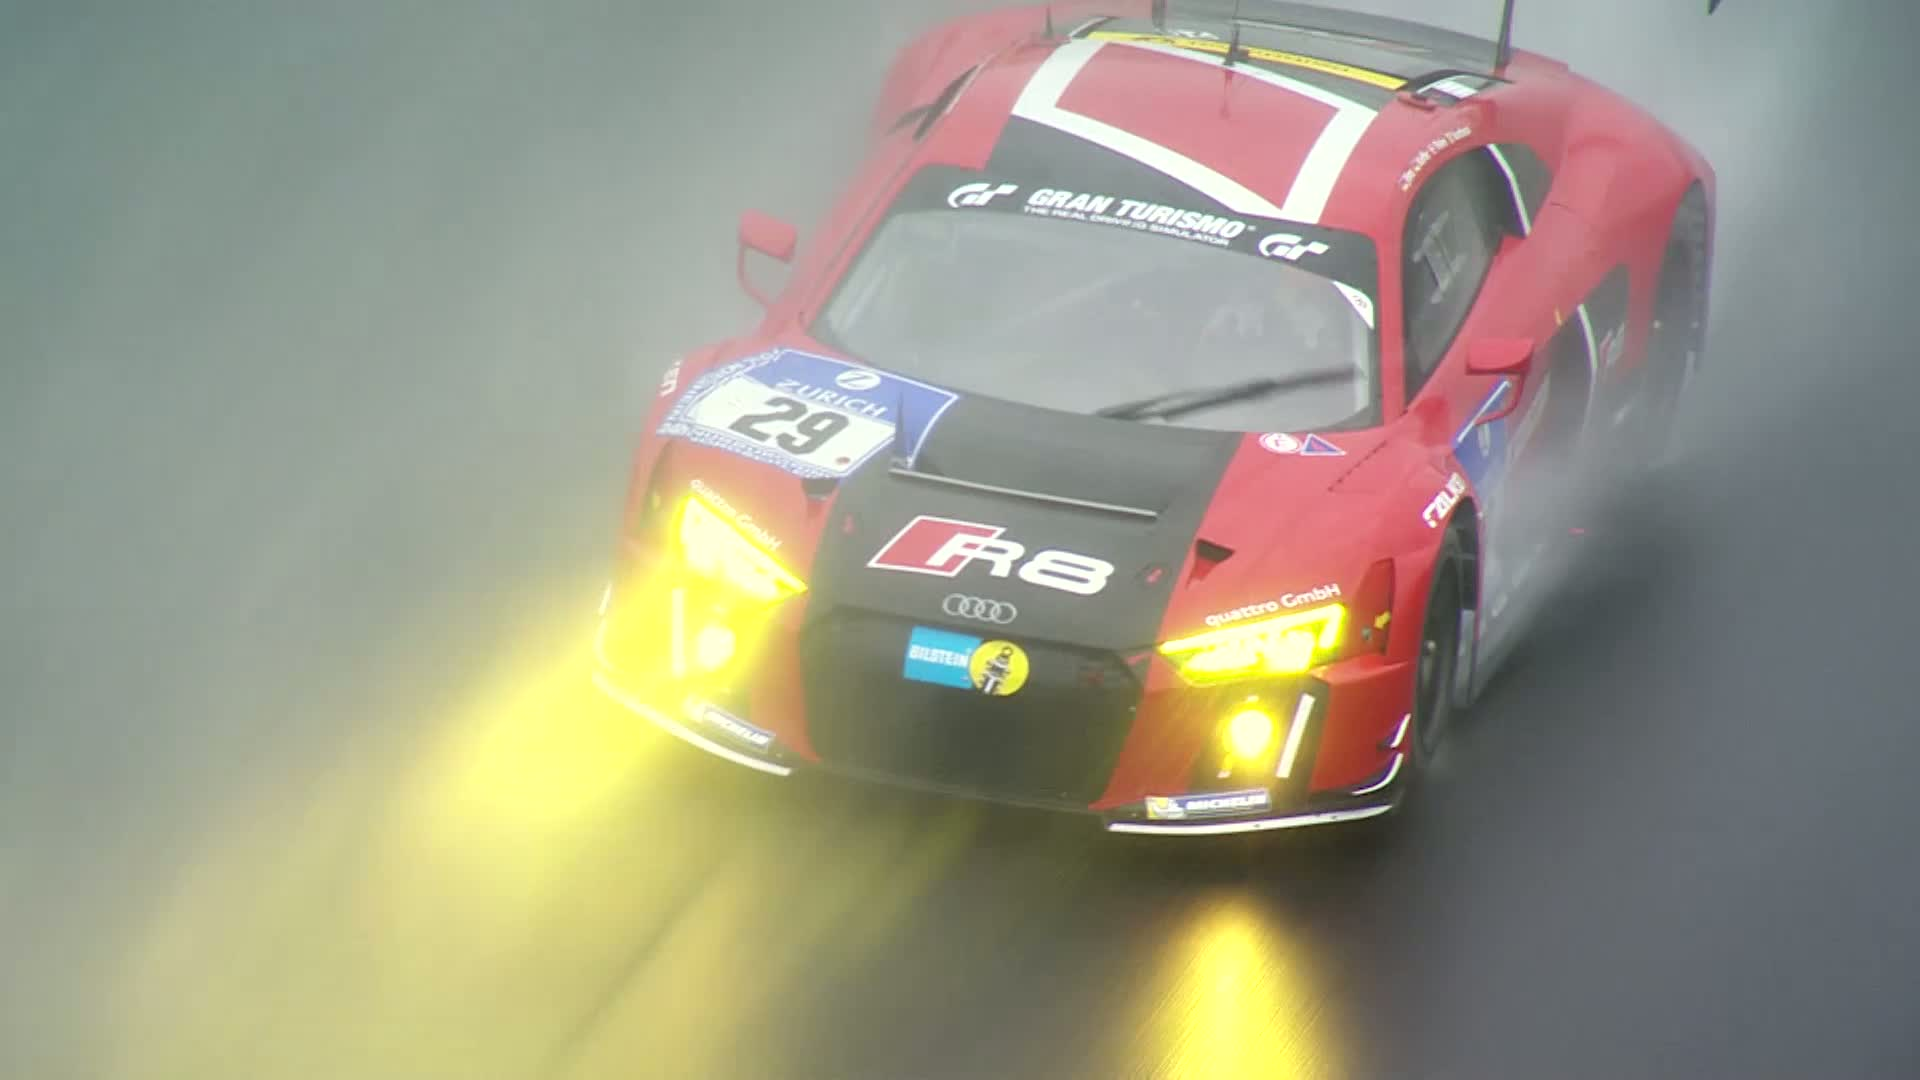 60 Seconds of Audi Sport 24/2015 - 24h Nürburgring, preview